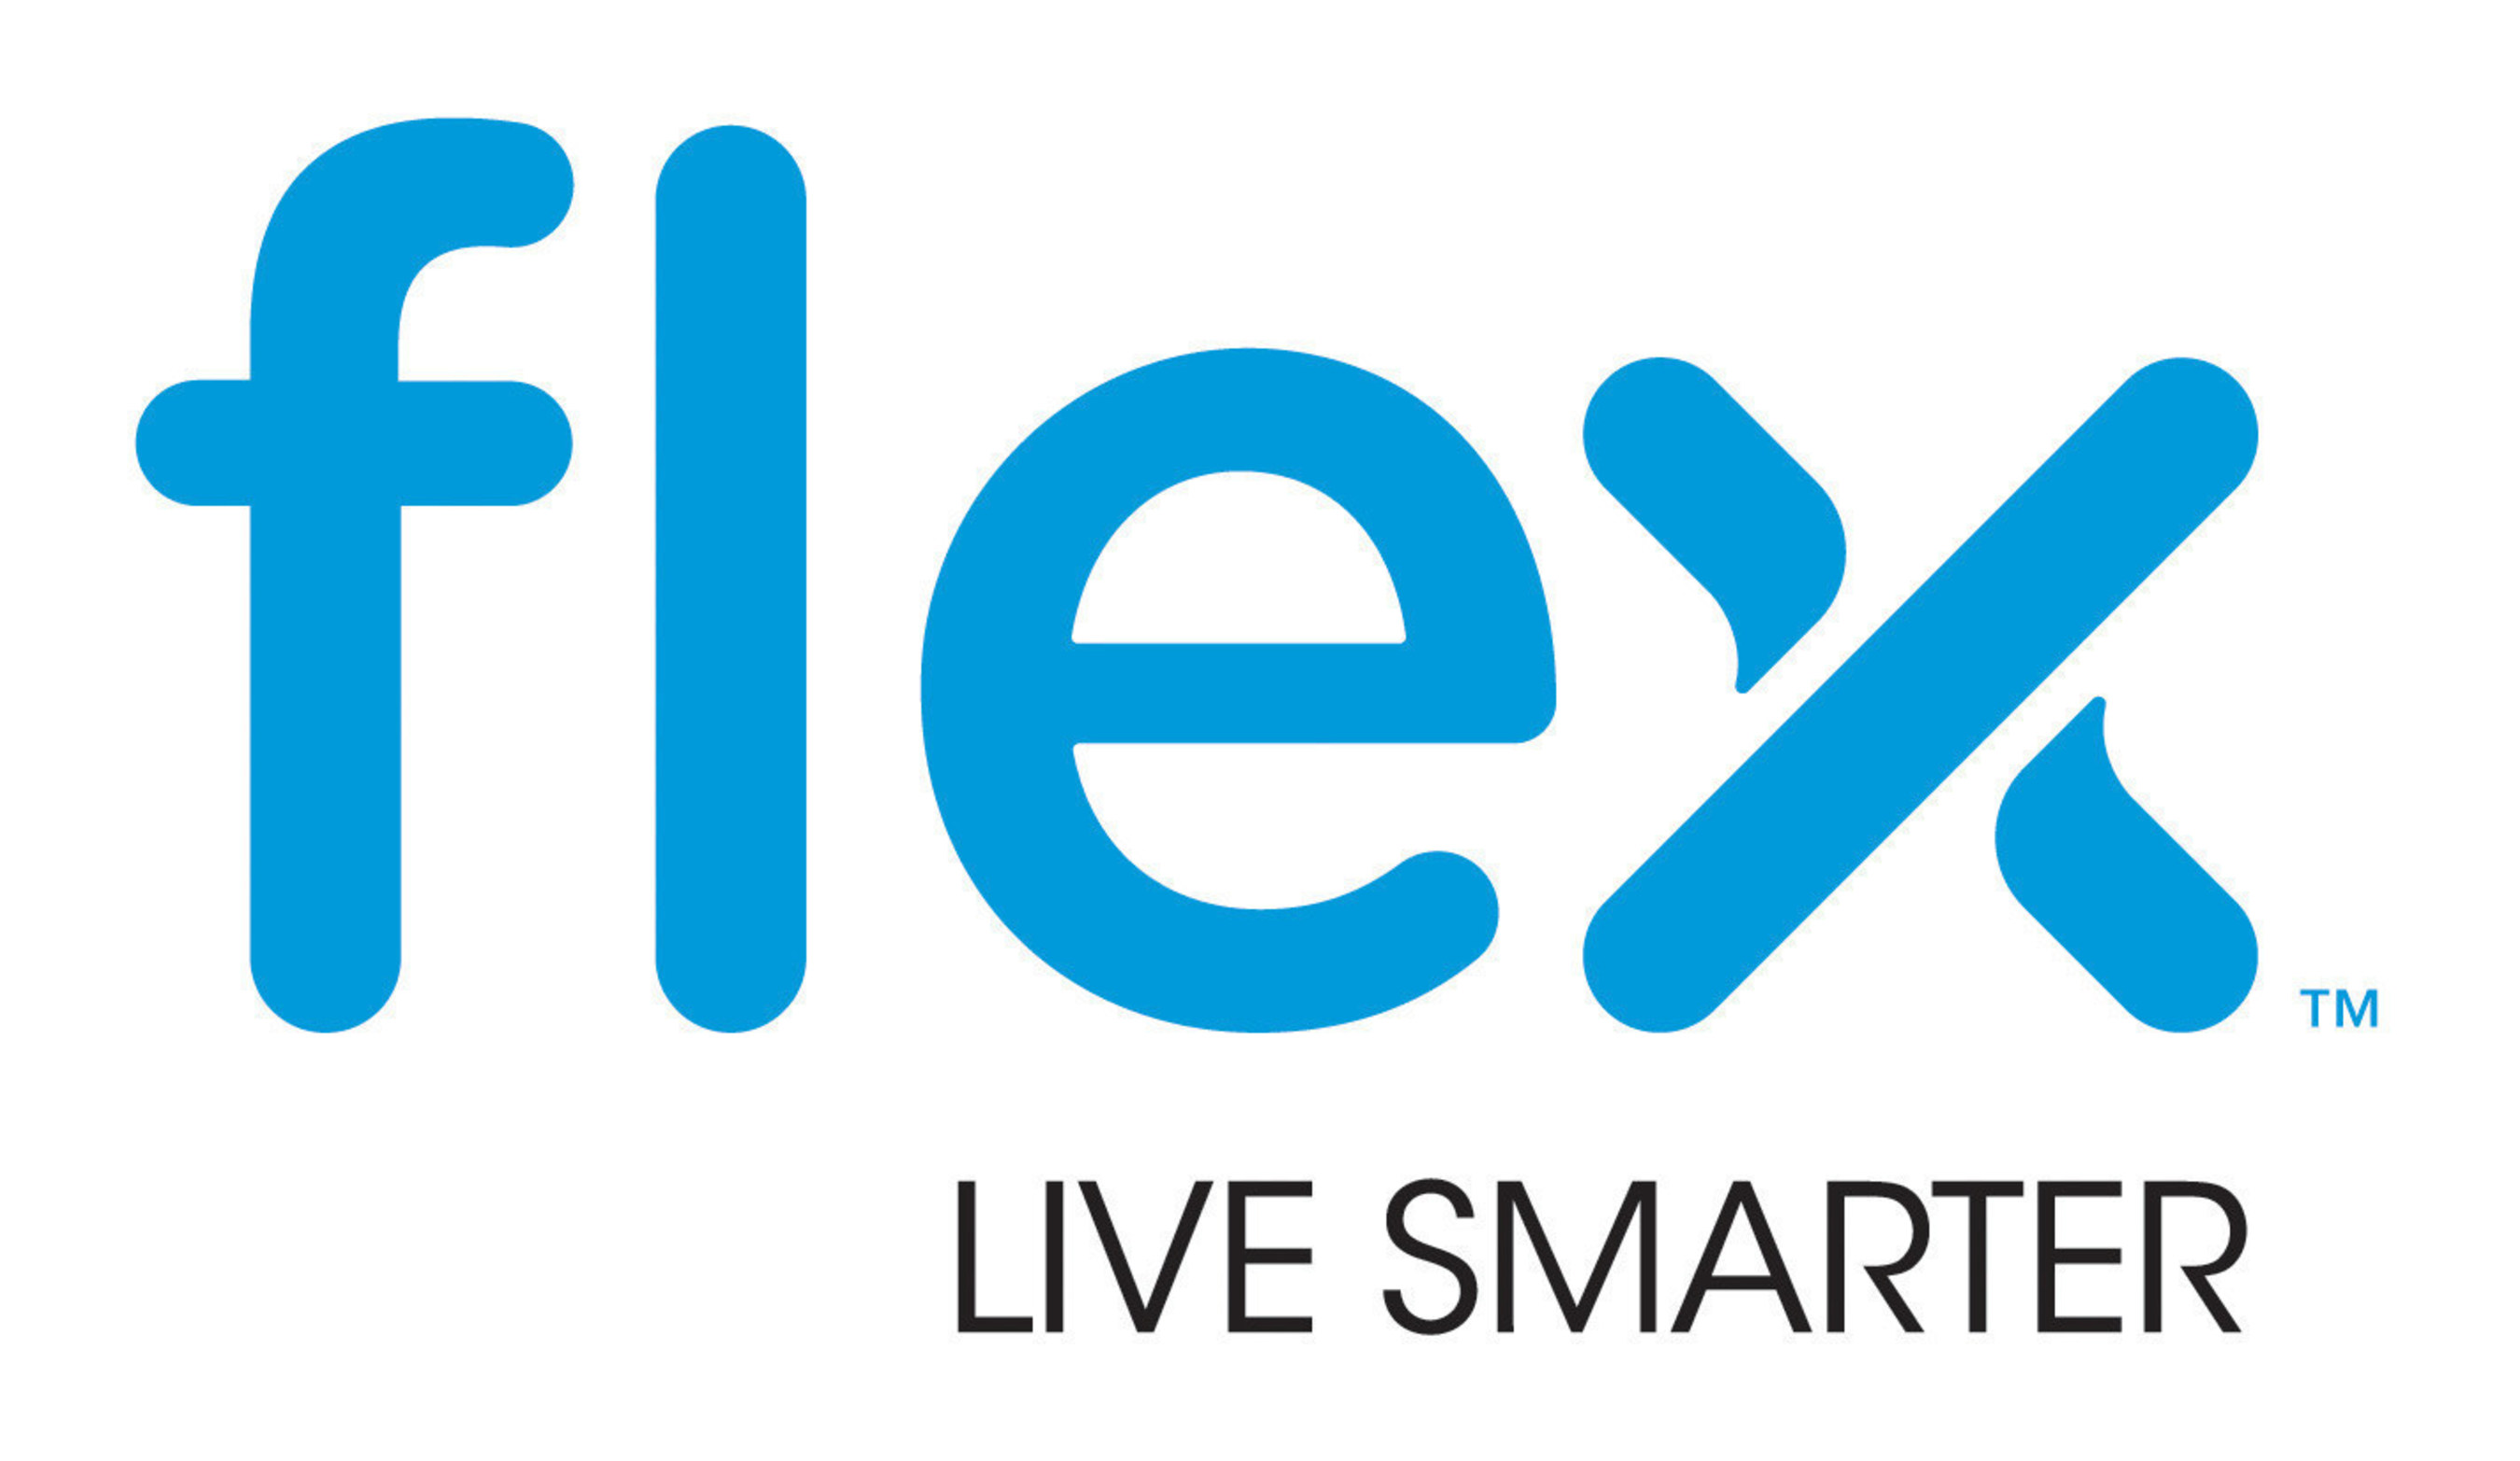 flextronics officially changes name to flex